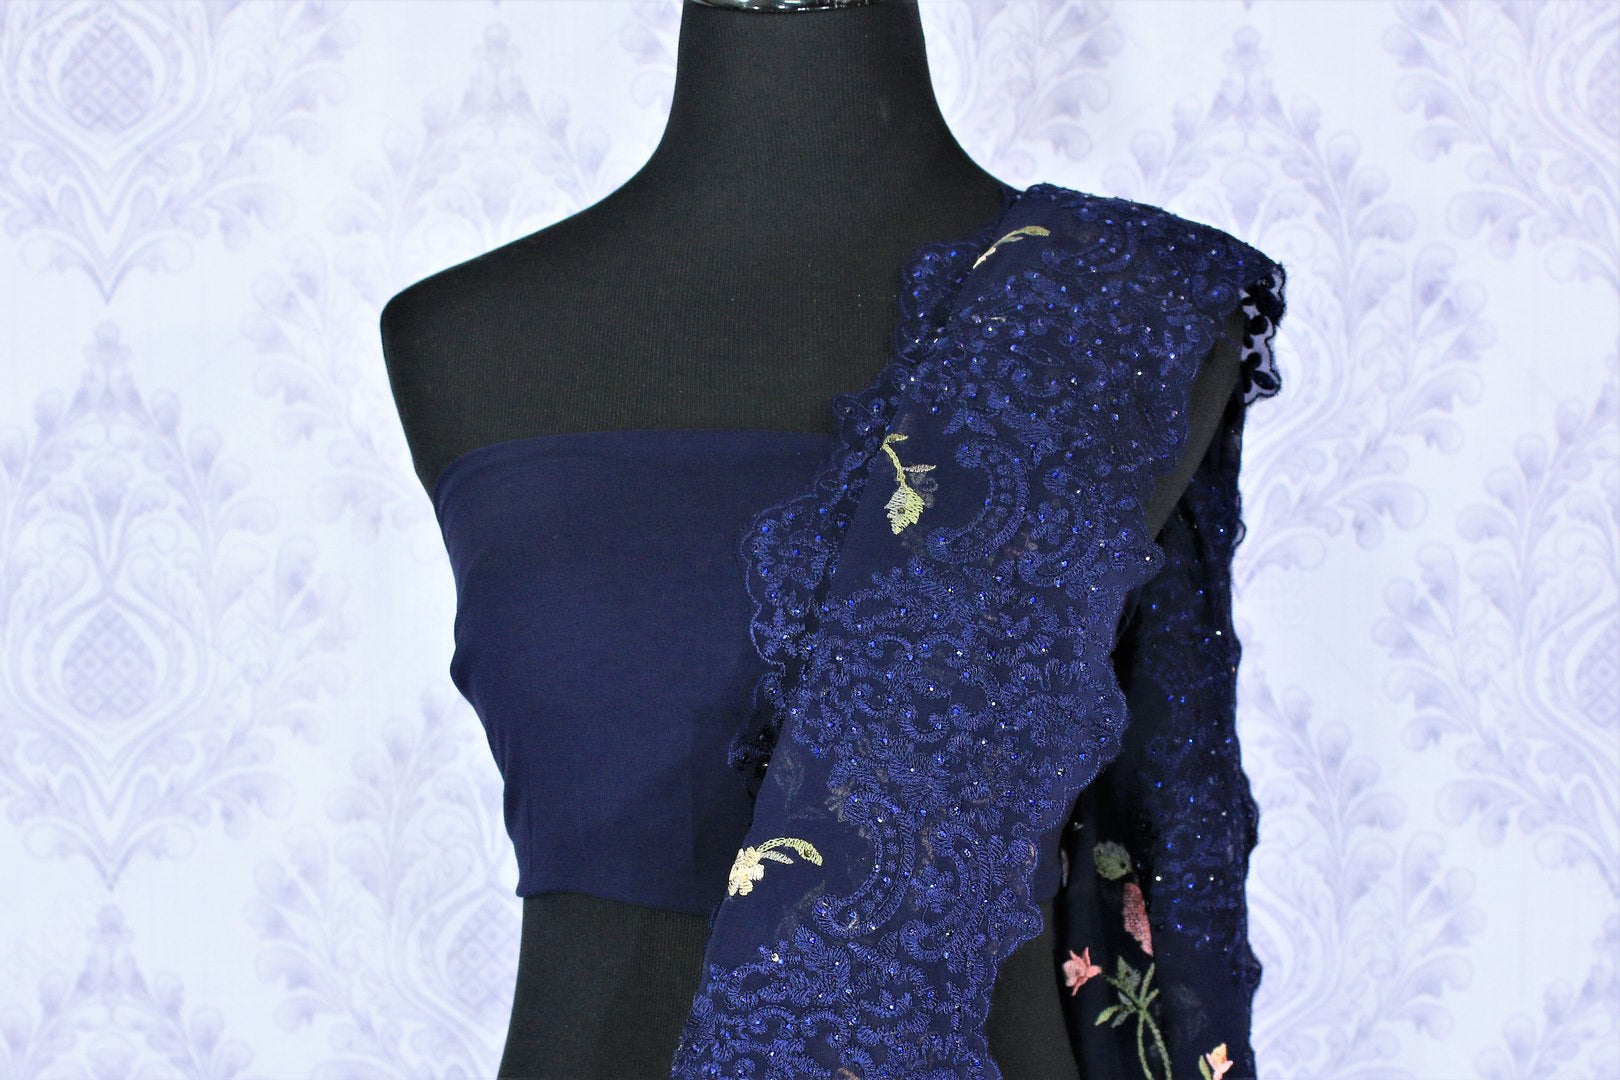 Buy navy blue floral embroidery georgette designer sari online in USA. Dazzle in this gorgeous sari with floral embroidery at parties and special occasions. Make your party look special with beautiful Indian designer saris available at Pure Elegance Indian clothing store in USA or shop online.-blouse pallu